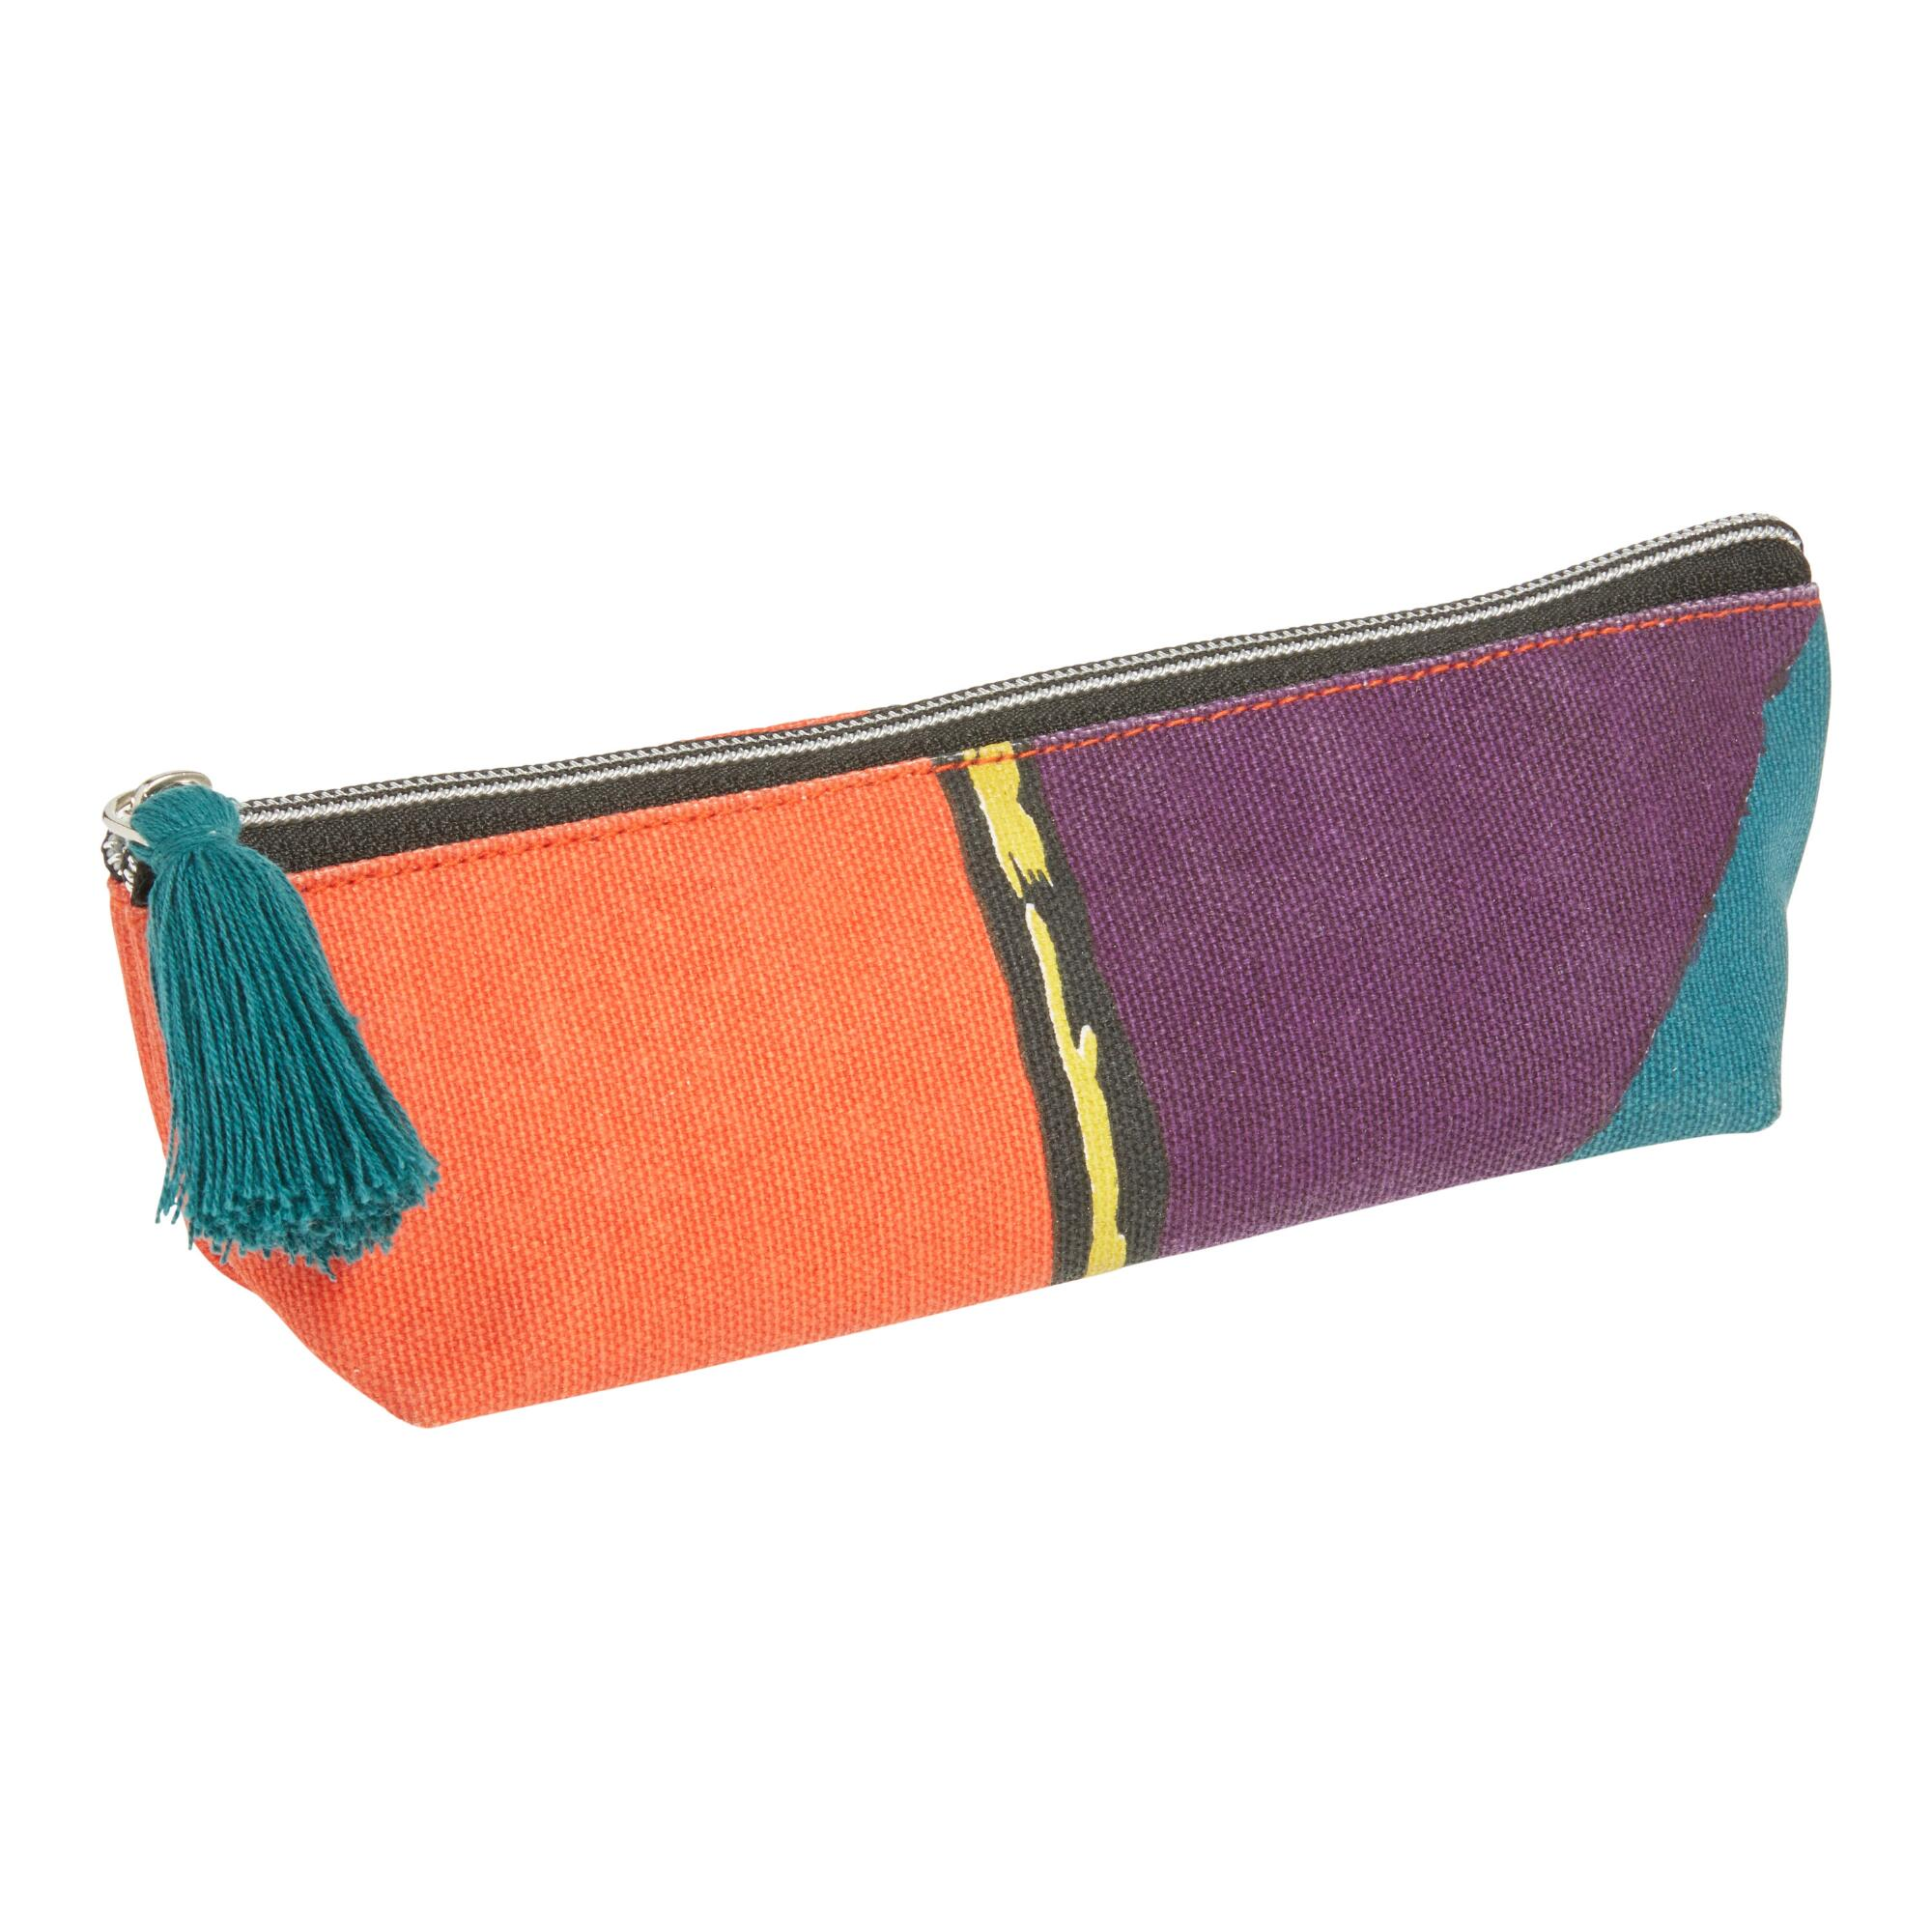 ArtLifting Beautiful Mother Canvas Pencil Case: Multi - Cotton by World Market